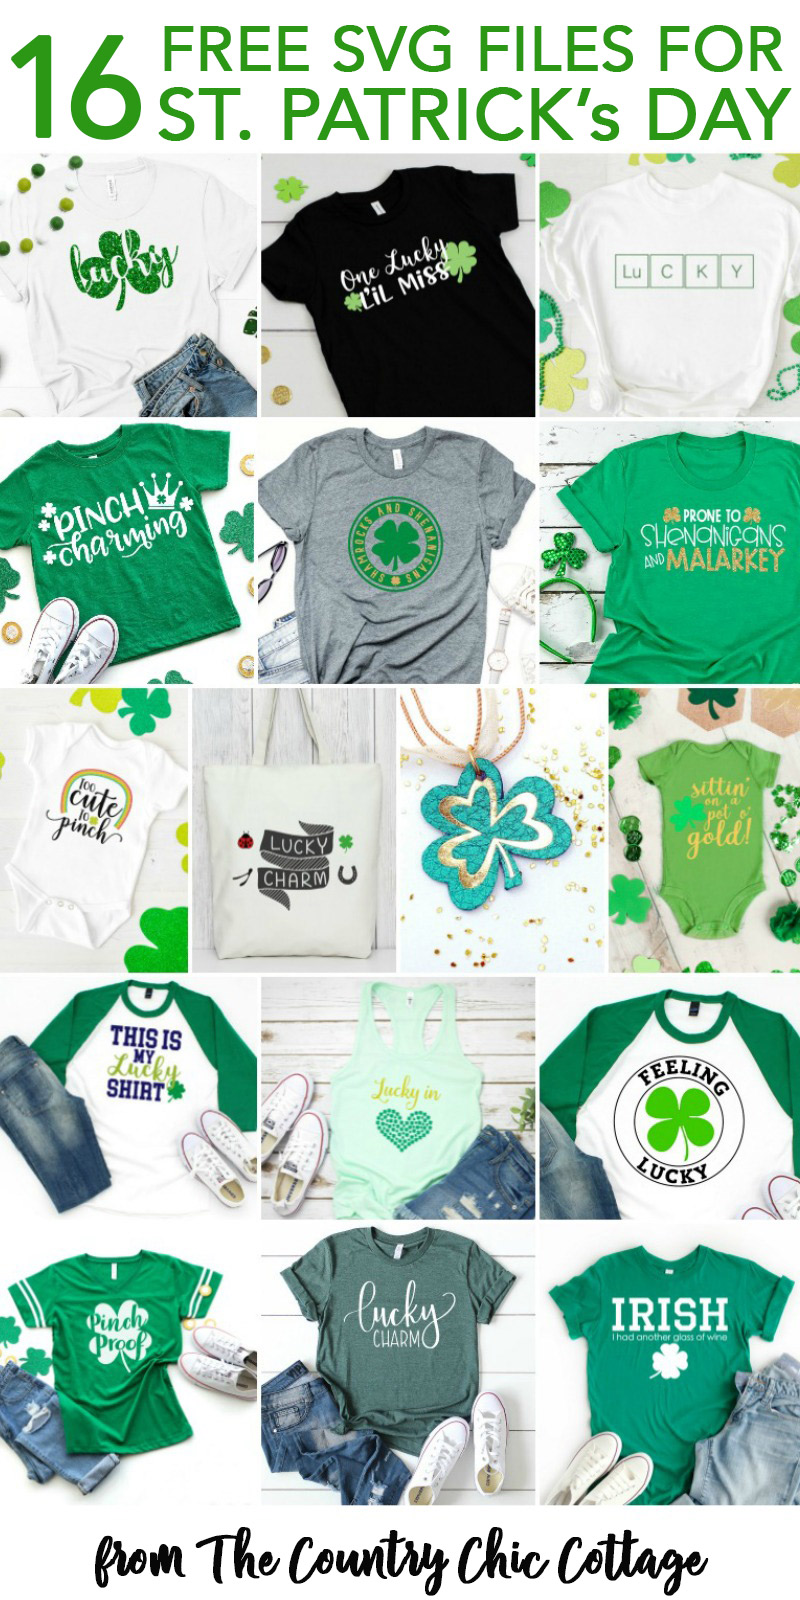 16 free St. Patrick's Day SVG files for you to use on all of your Cricut and Silhouette crafts! #cricut #cricutmade #silhouette #svg #svgfile #freesvgfile #freesvg